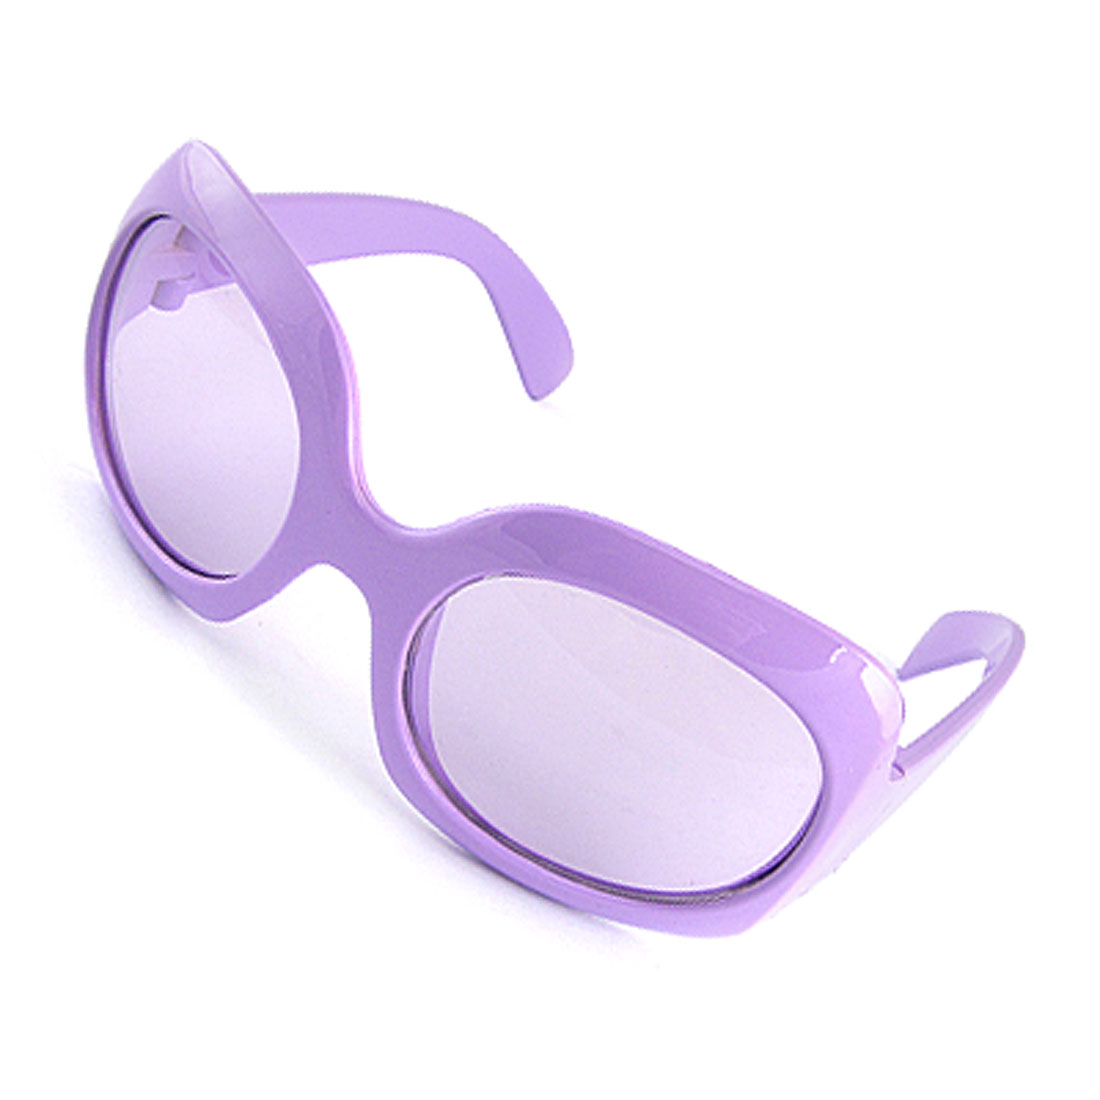 Purple Frame Plastic Small Kids Sunglasses Eyewear for Girls